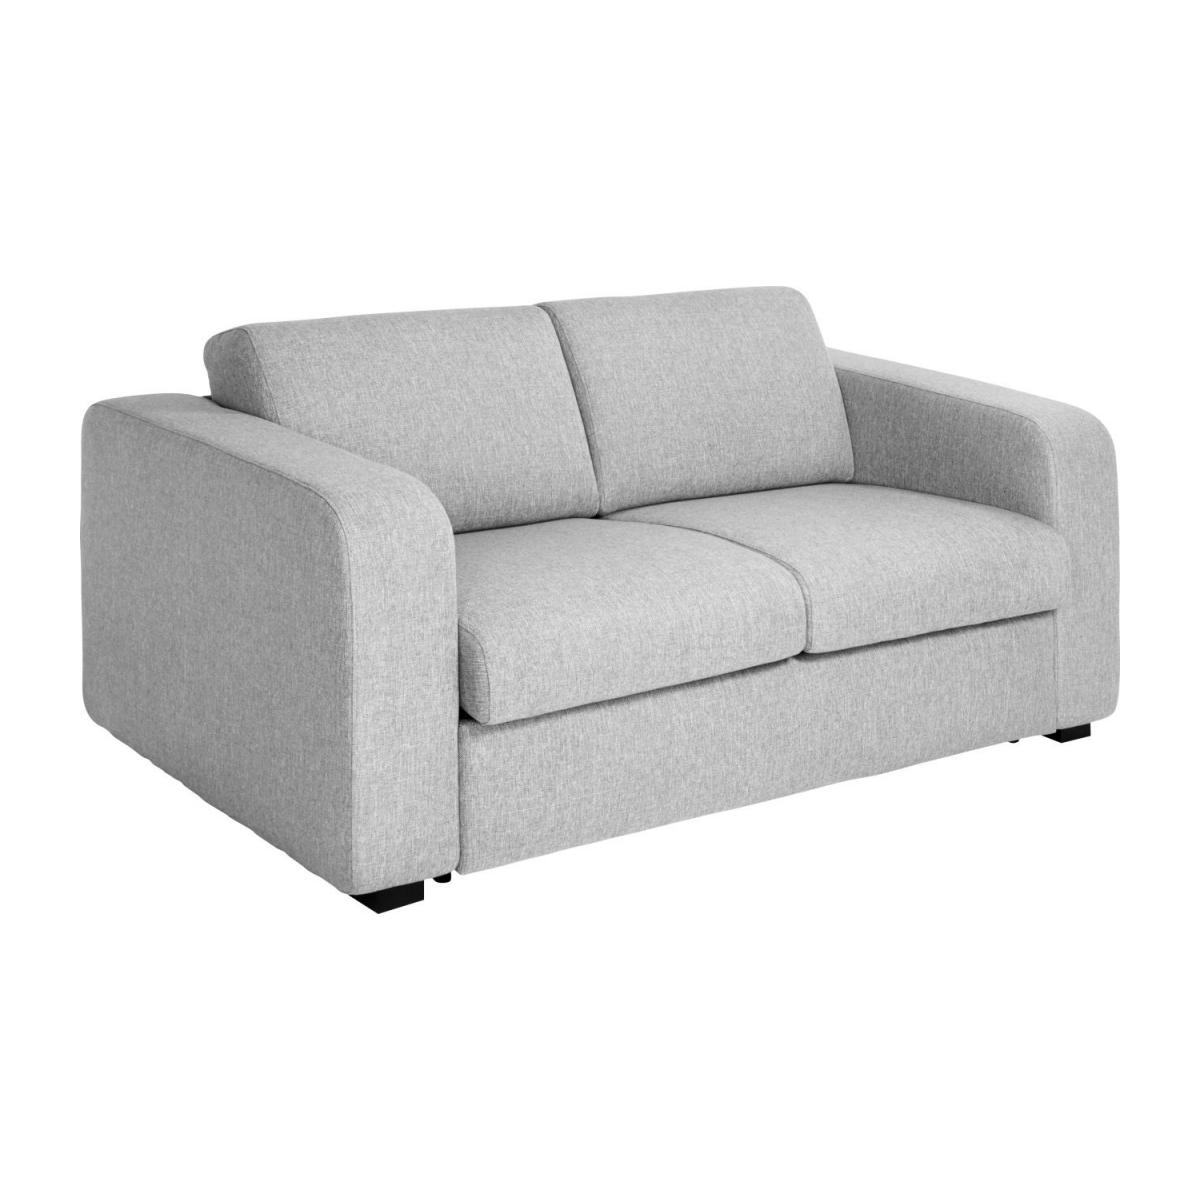 Tremendous Compact Fabric Sofa Caraccident5 Cool Chair Designs And Ideas Caraccident5Info